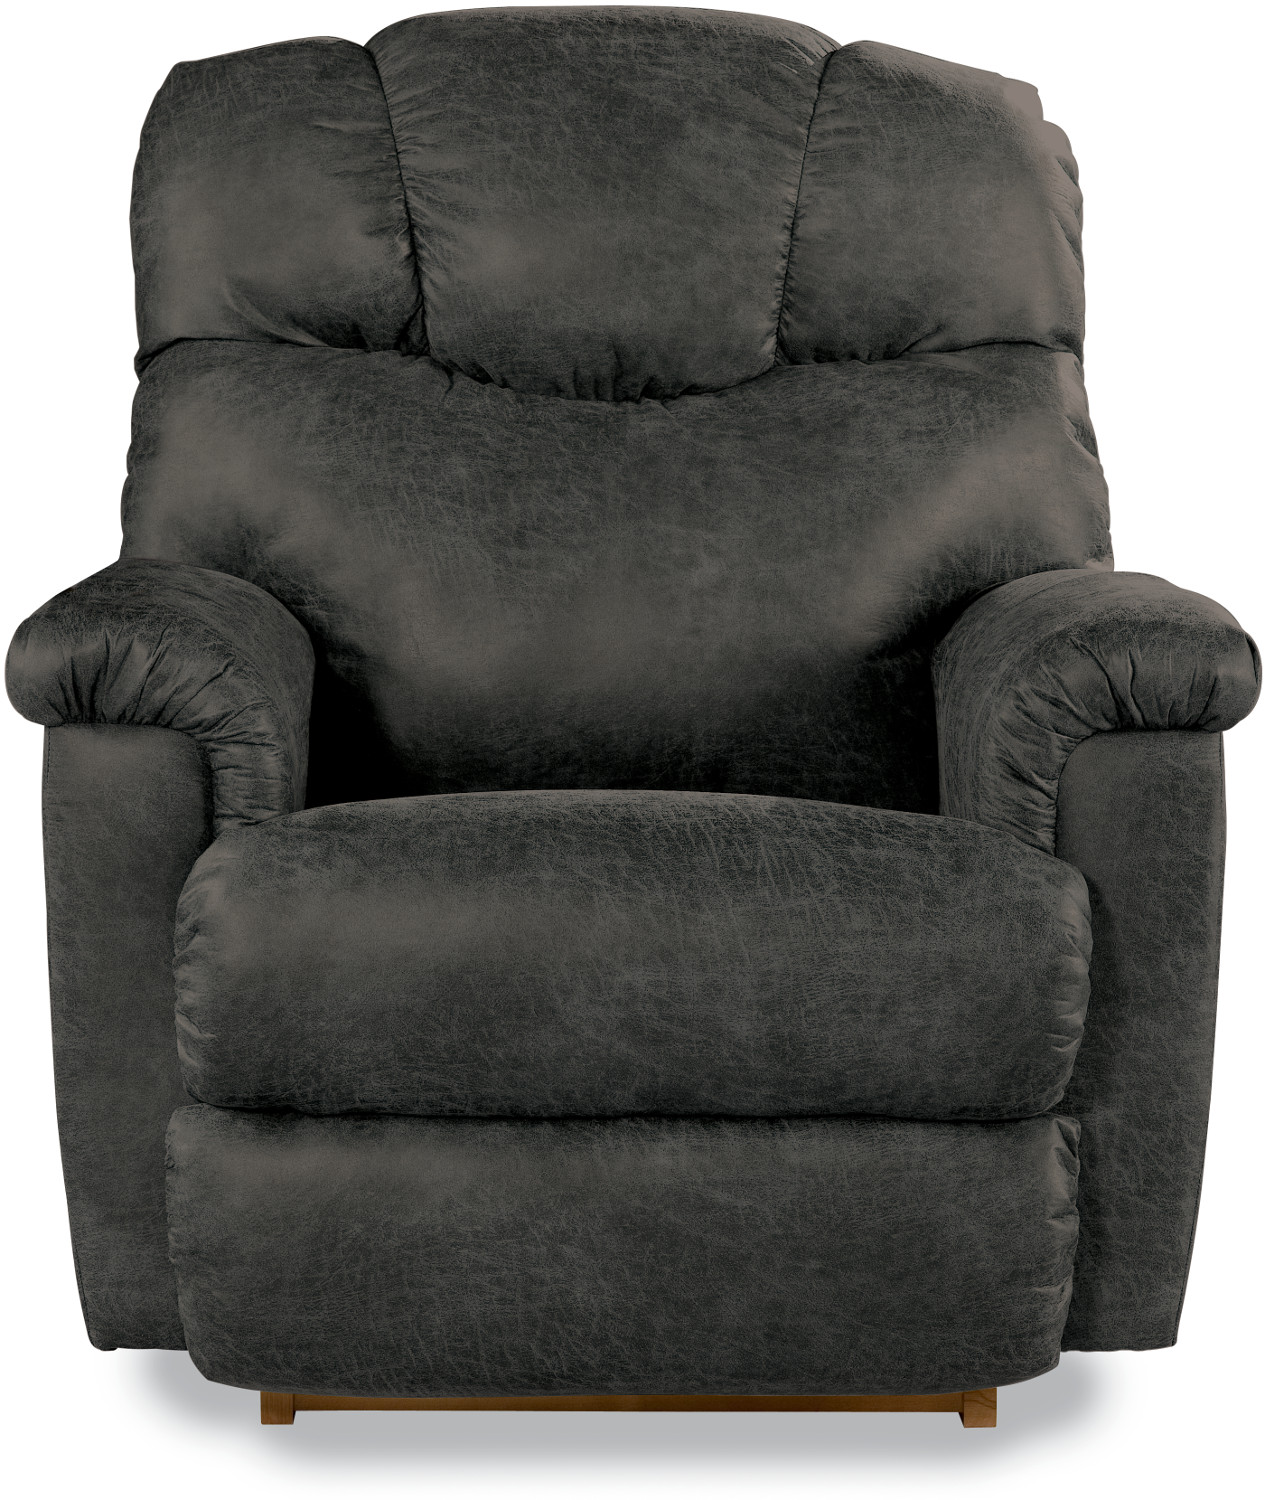 La-Z-Boy Palance Power Recliner